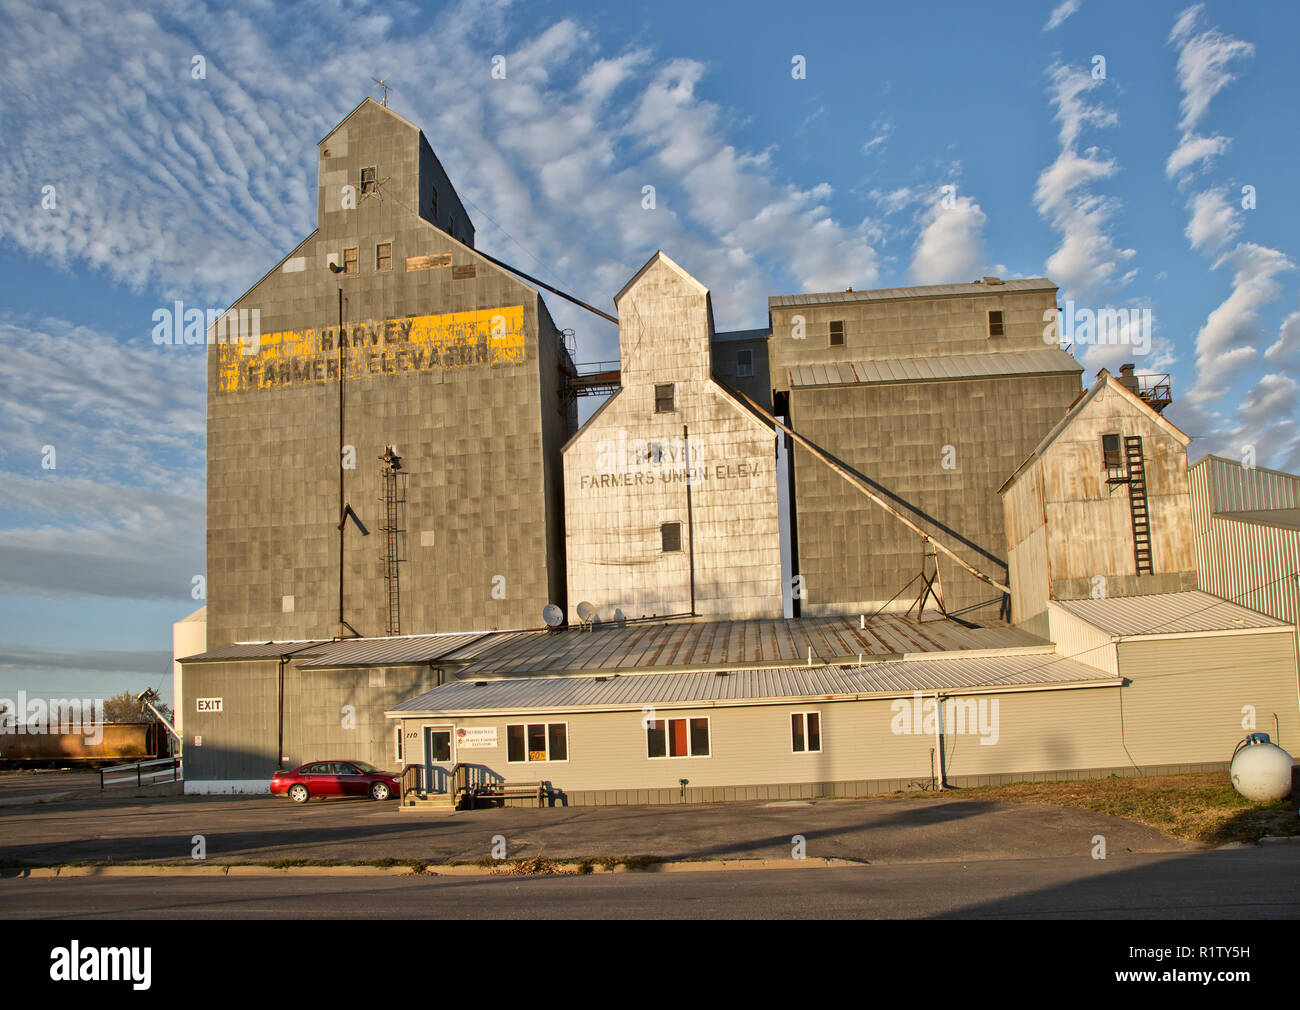 Harvey 'Farmers Elevator'  & the older 'Farmers Union' elevator to the right, early morning light, Harvey, North Dakota. - Stock Image